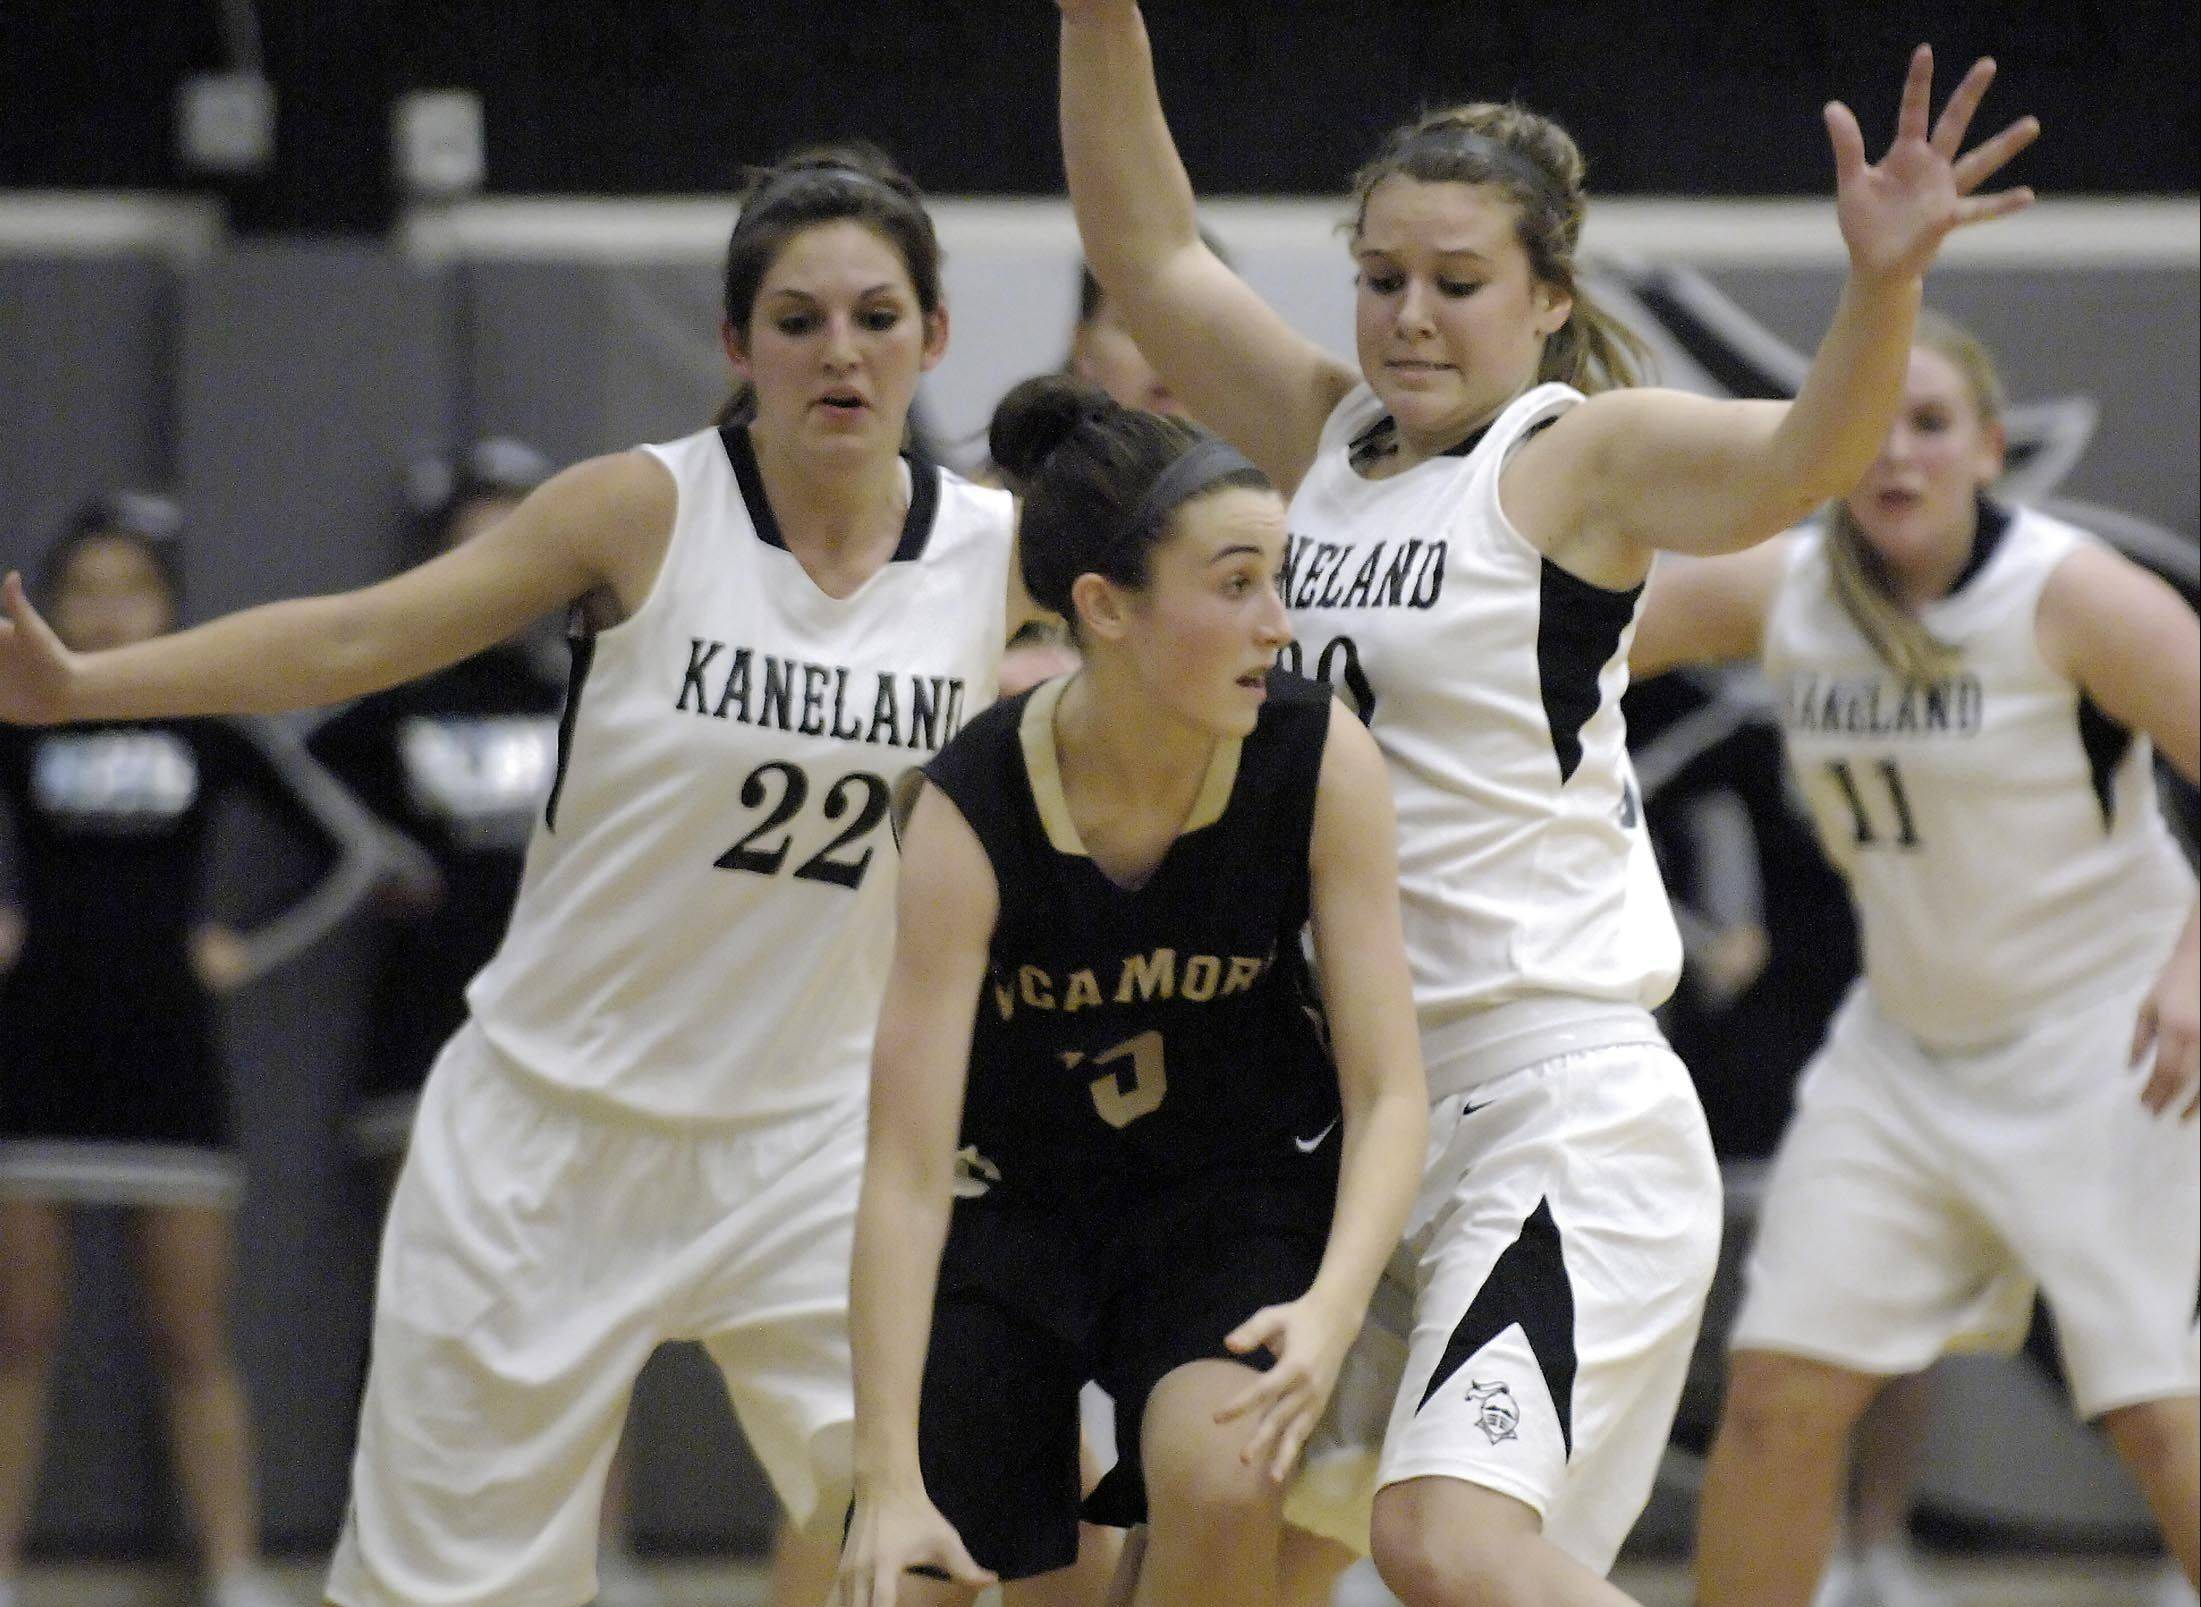 Kaneland's Brooke Harner (22) applies defensive pressure.